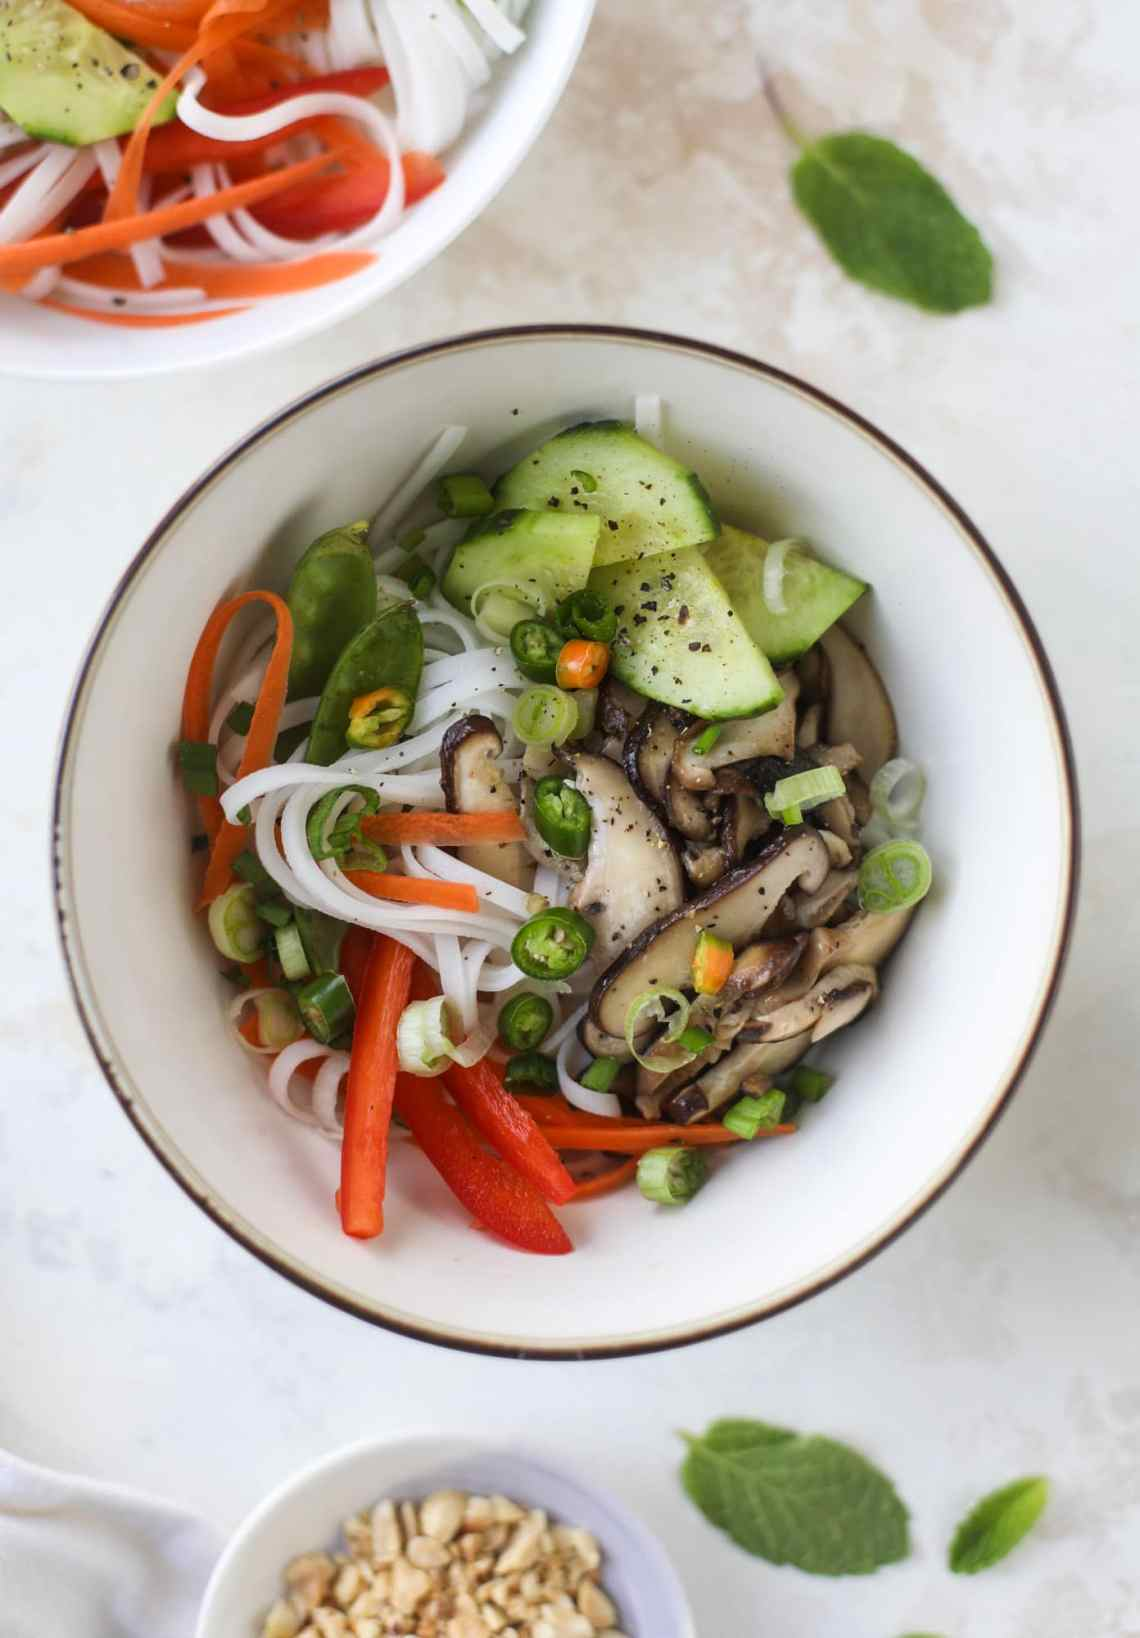 Ginger scallion noodle bowls are a flavorful, comforting vegetarian meal that can be customized to include any veggies you love! I howsweeteats.com #noodle #bowls